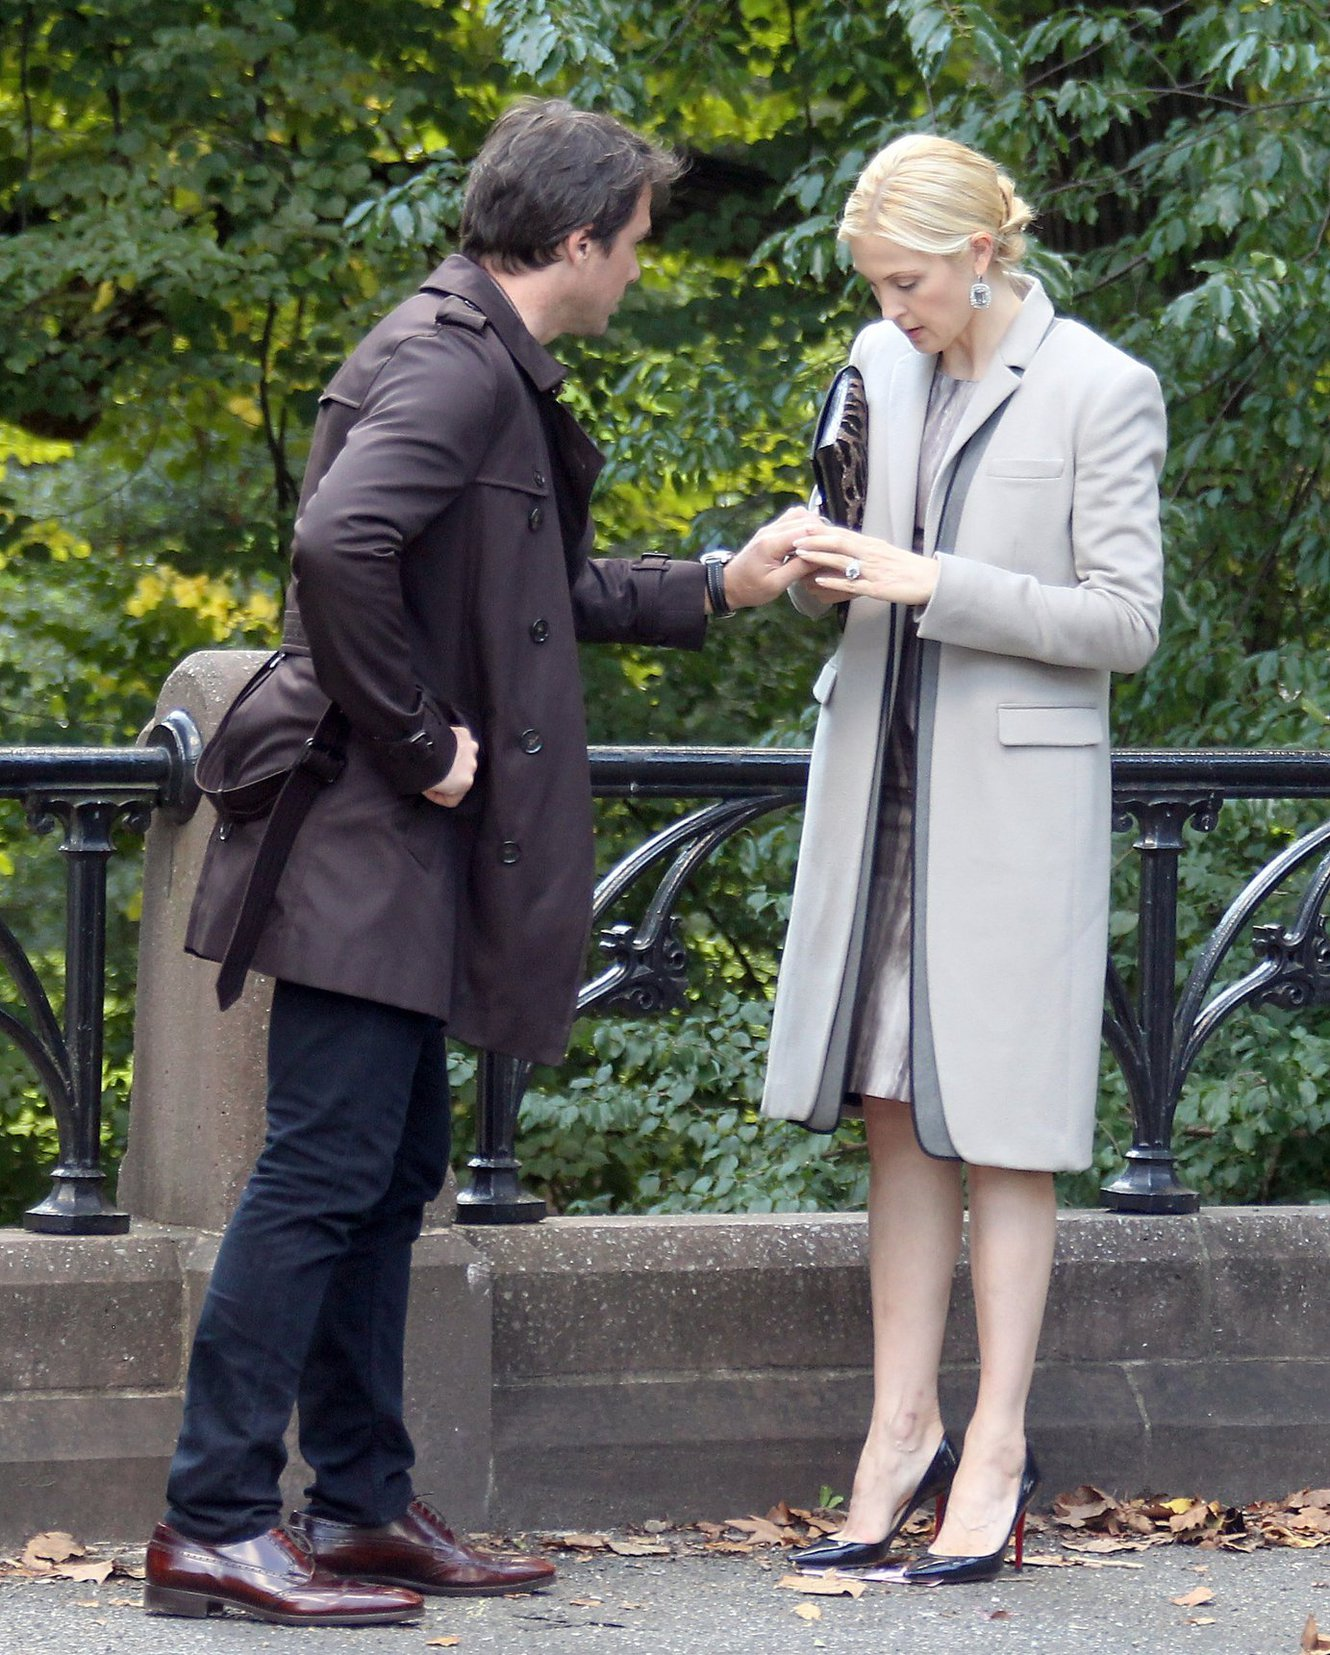 Kelly Rutherford - On the set of Gossip Girl in New York - September 10, 2012